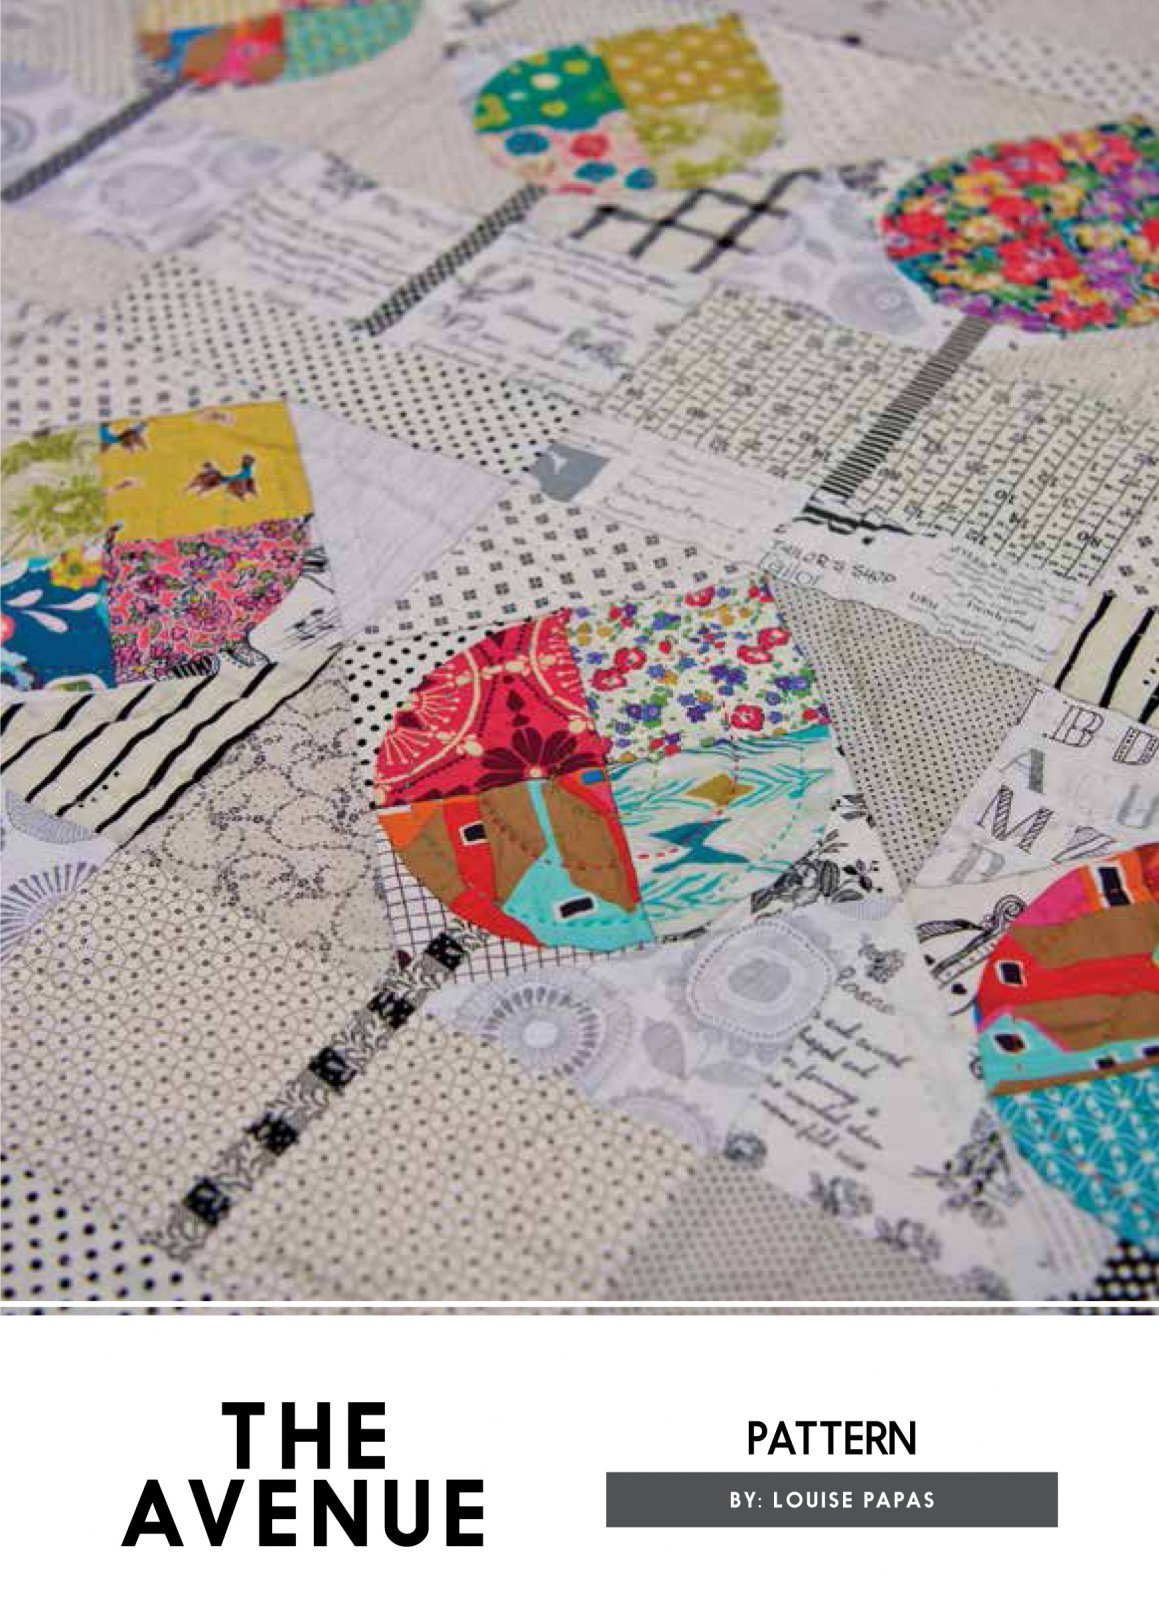 The Avenue Pattern by Louise Papas for Jen Kingwell Designs